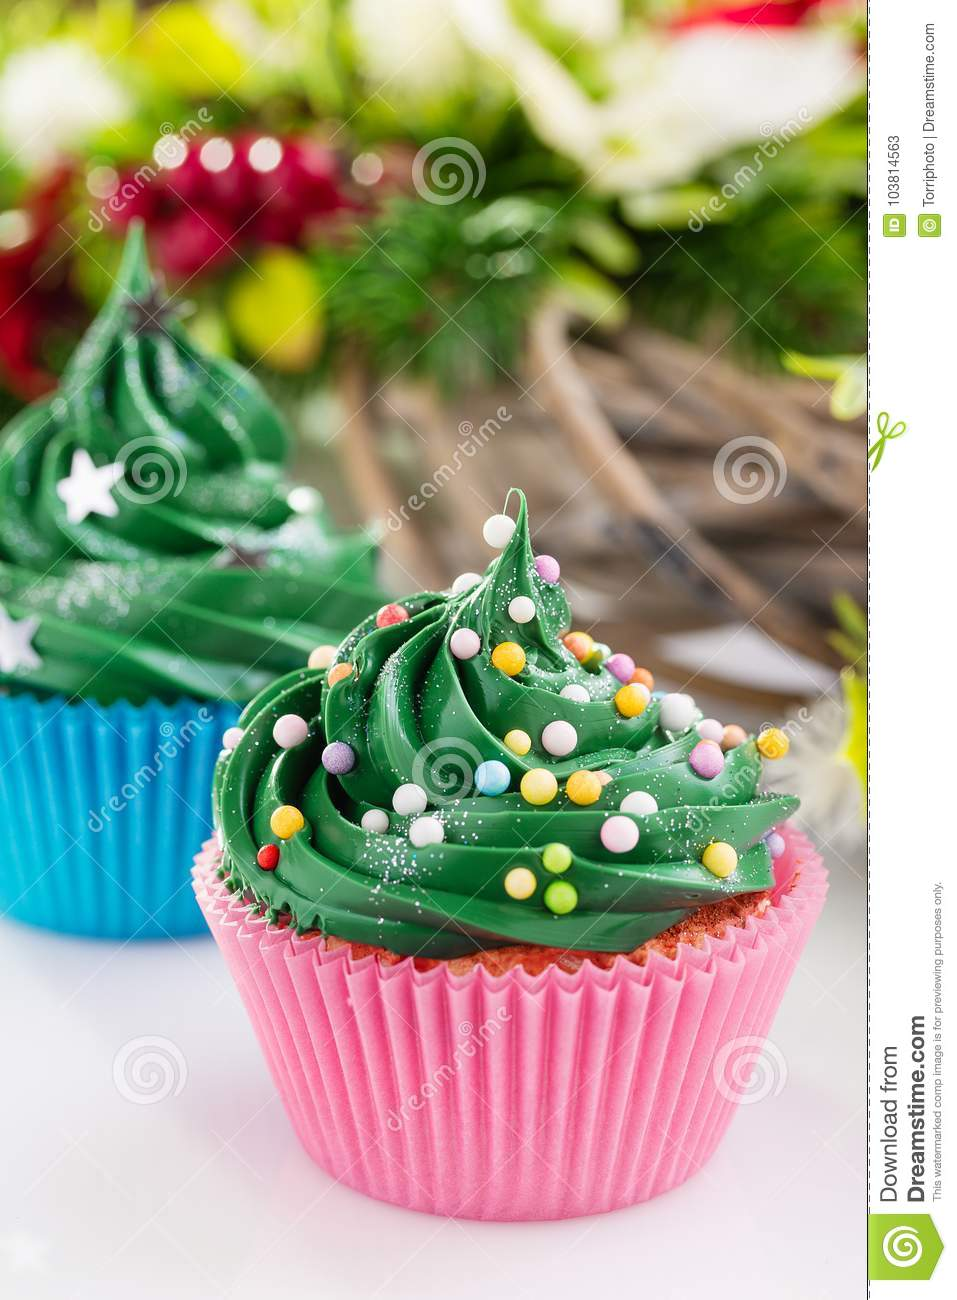 Green christmas cupcaks with festive decorations